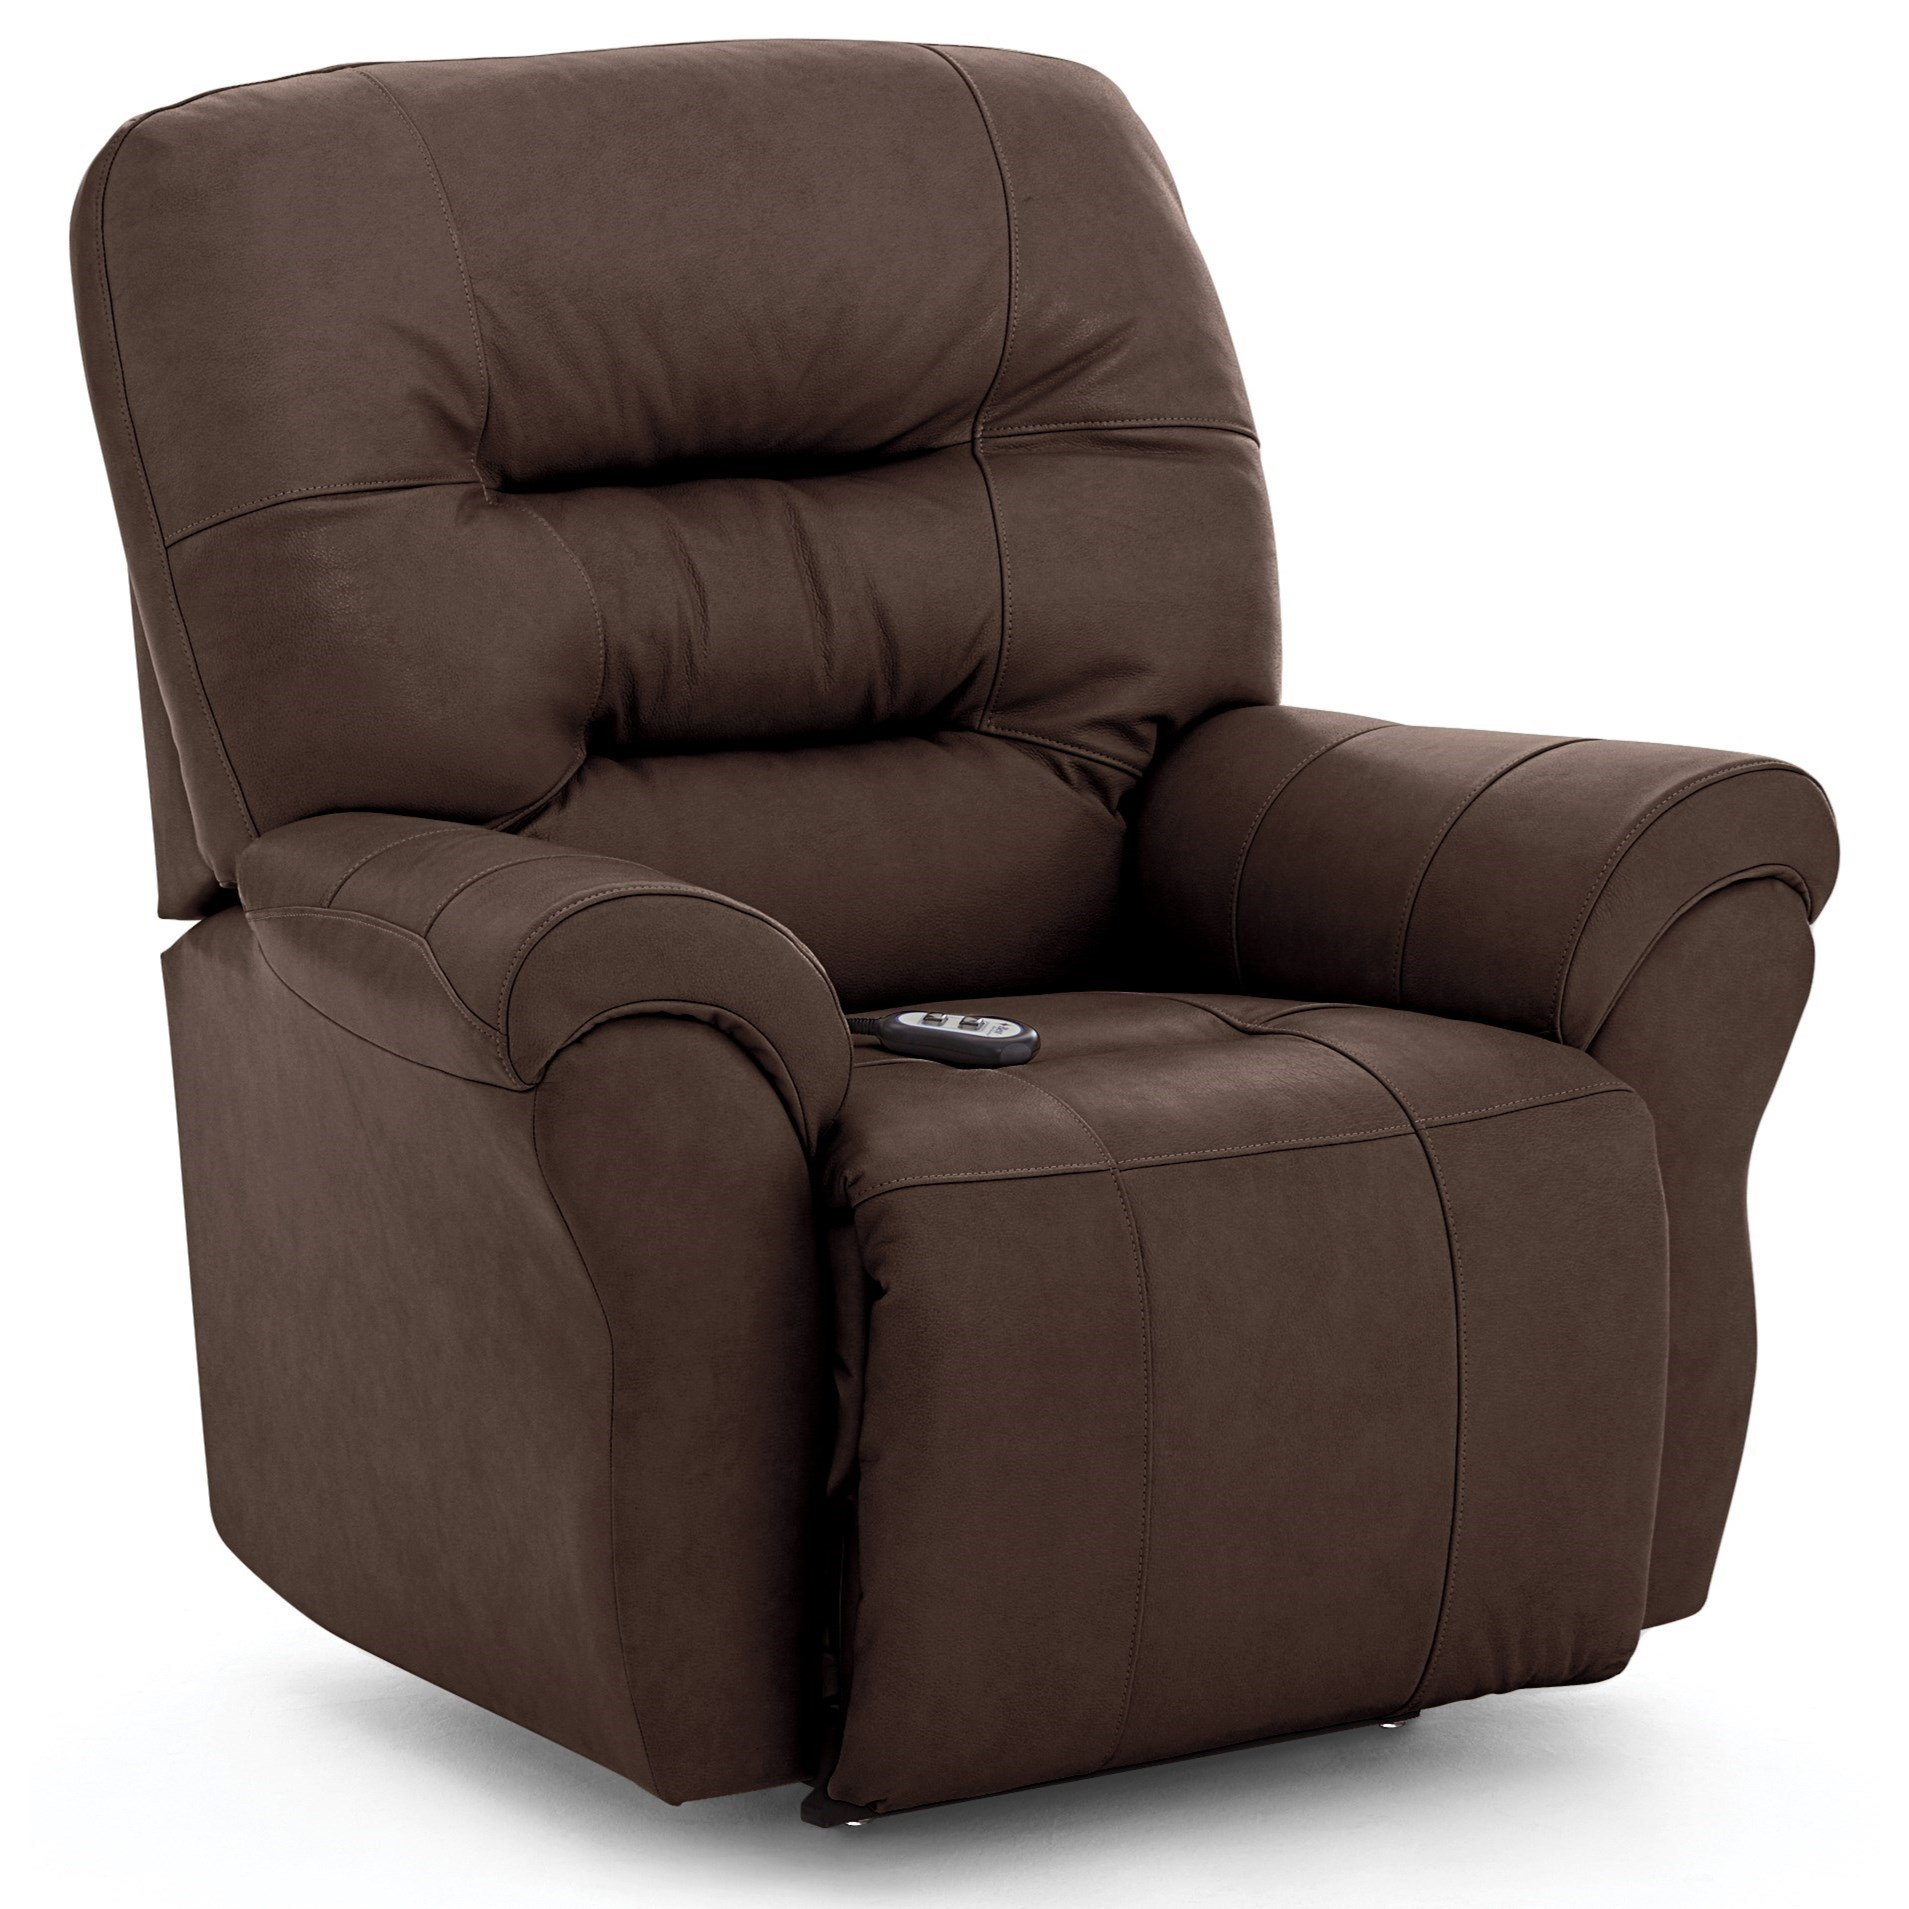 Unity Power Swivel Glider Recliner by Best Home Furnishings at Powell's Furniture and Mattress